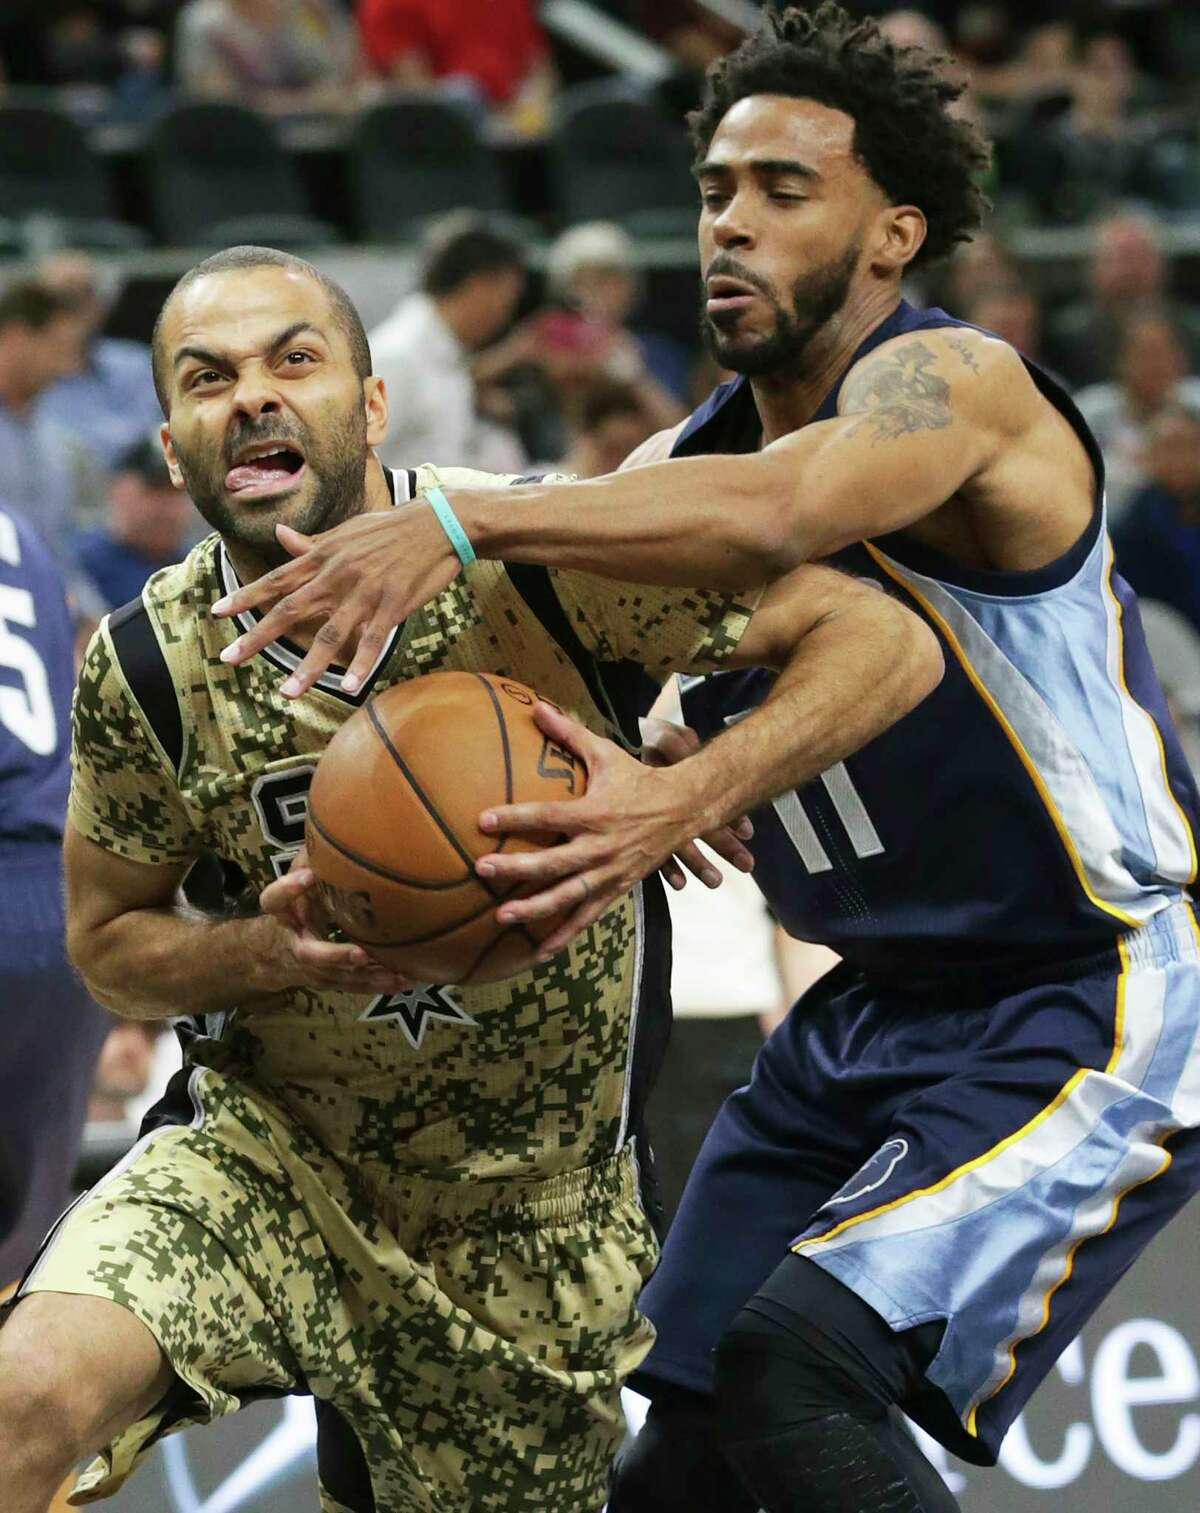 The Spurs' Tony Parker, left, fights his way past the Grizzlies' Mike Conley to the basket during Thursday's game.